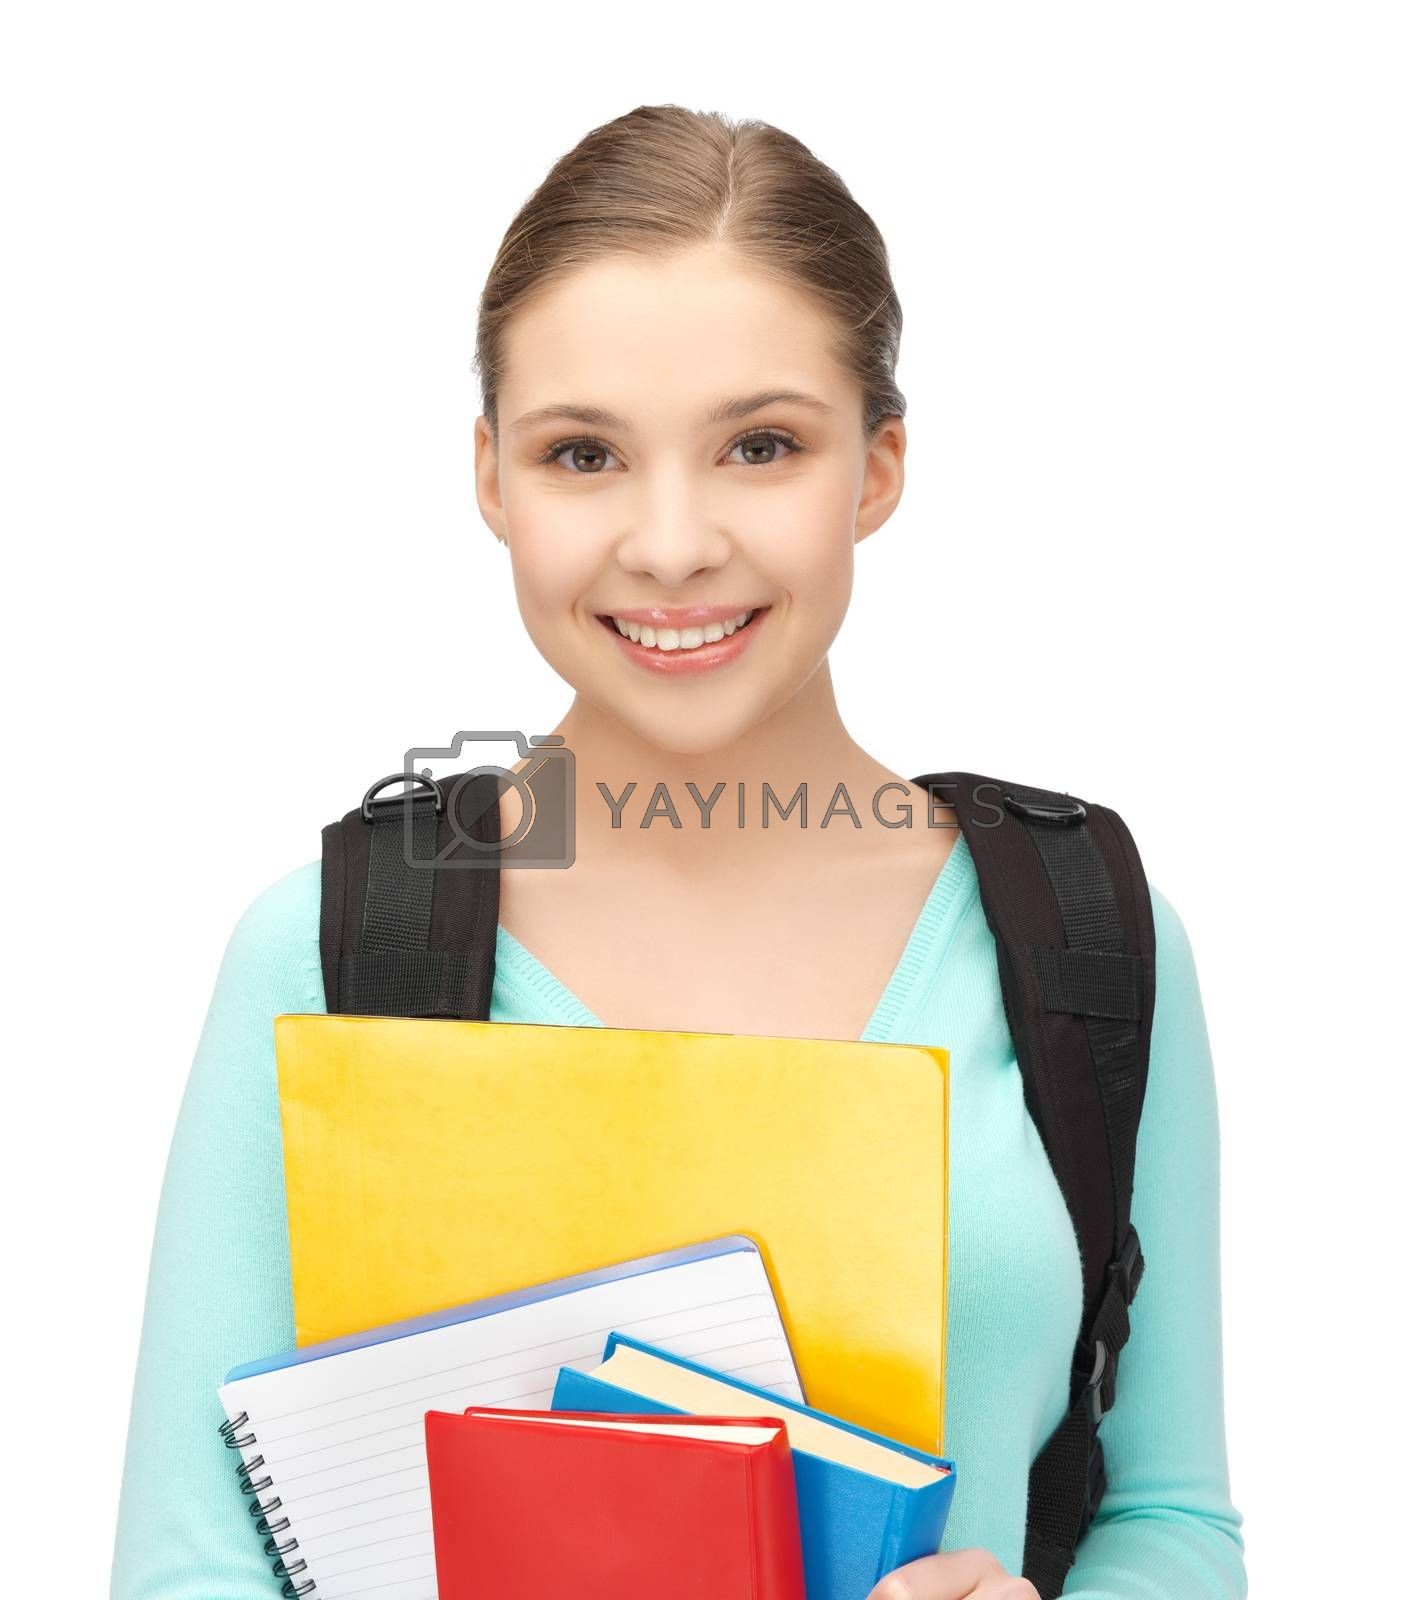 student with books and schoolbag by dolgachov